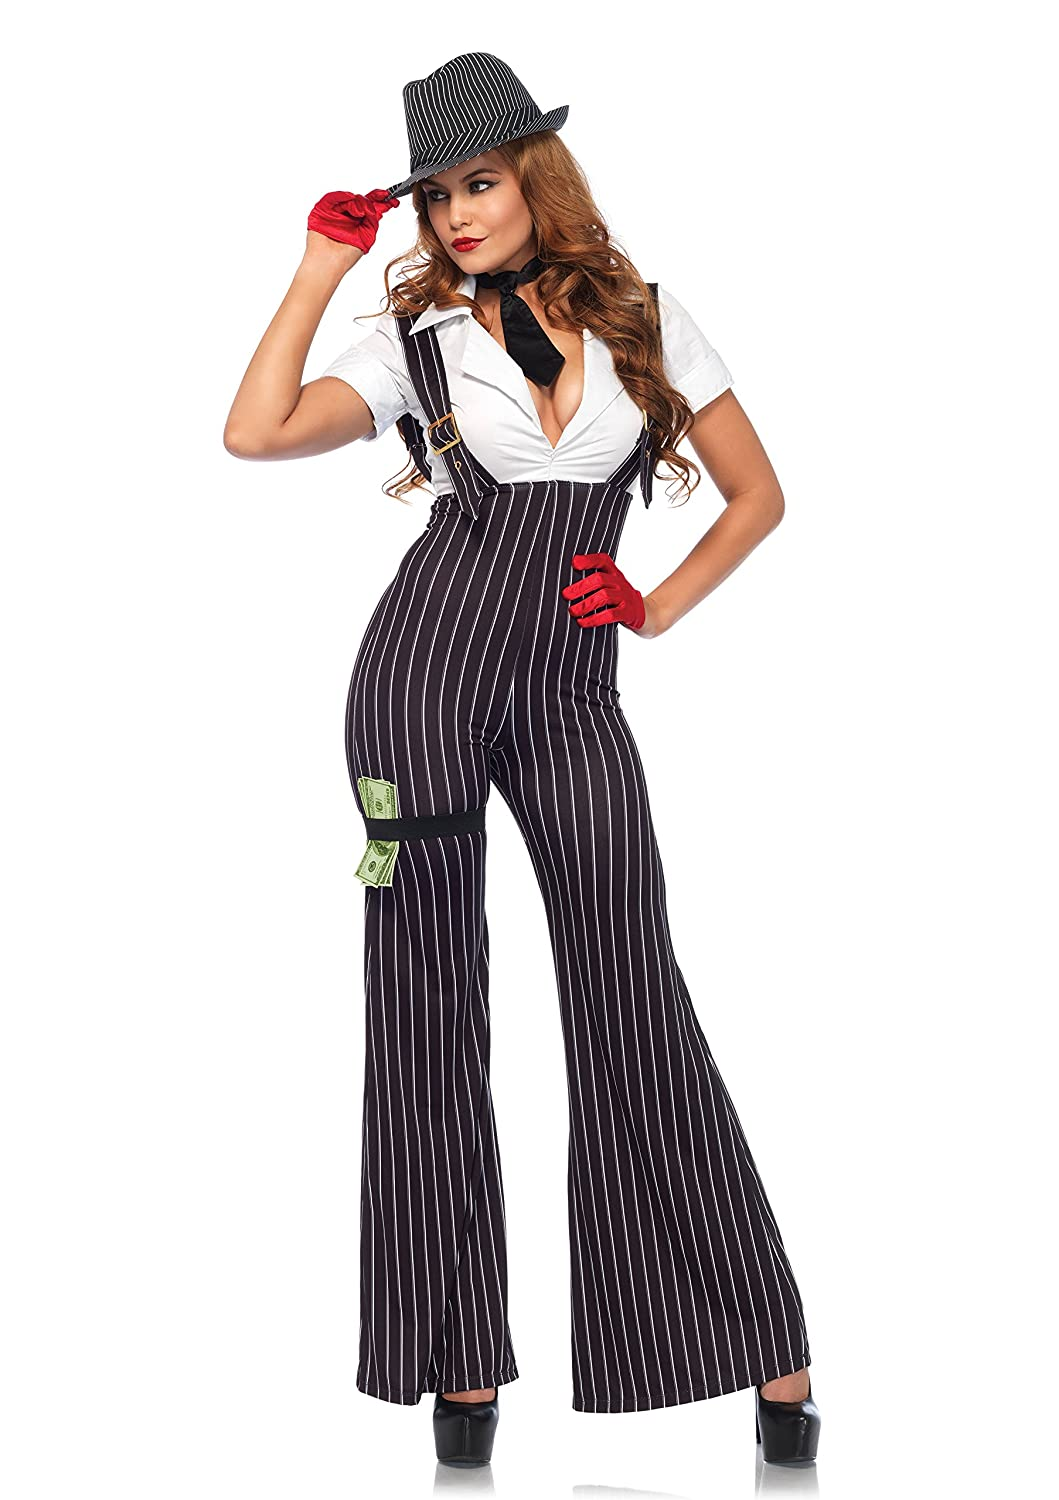 Gangster Costumes & Outfits | Women's and Men's Brass Knuckle Babe Costume  AT vintagedancer.com